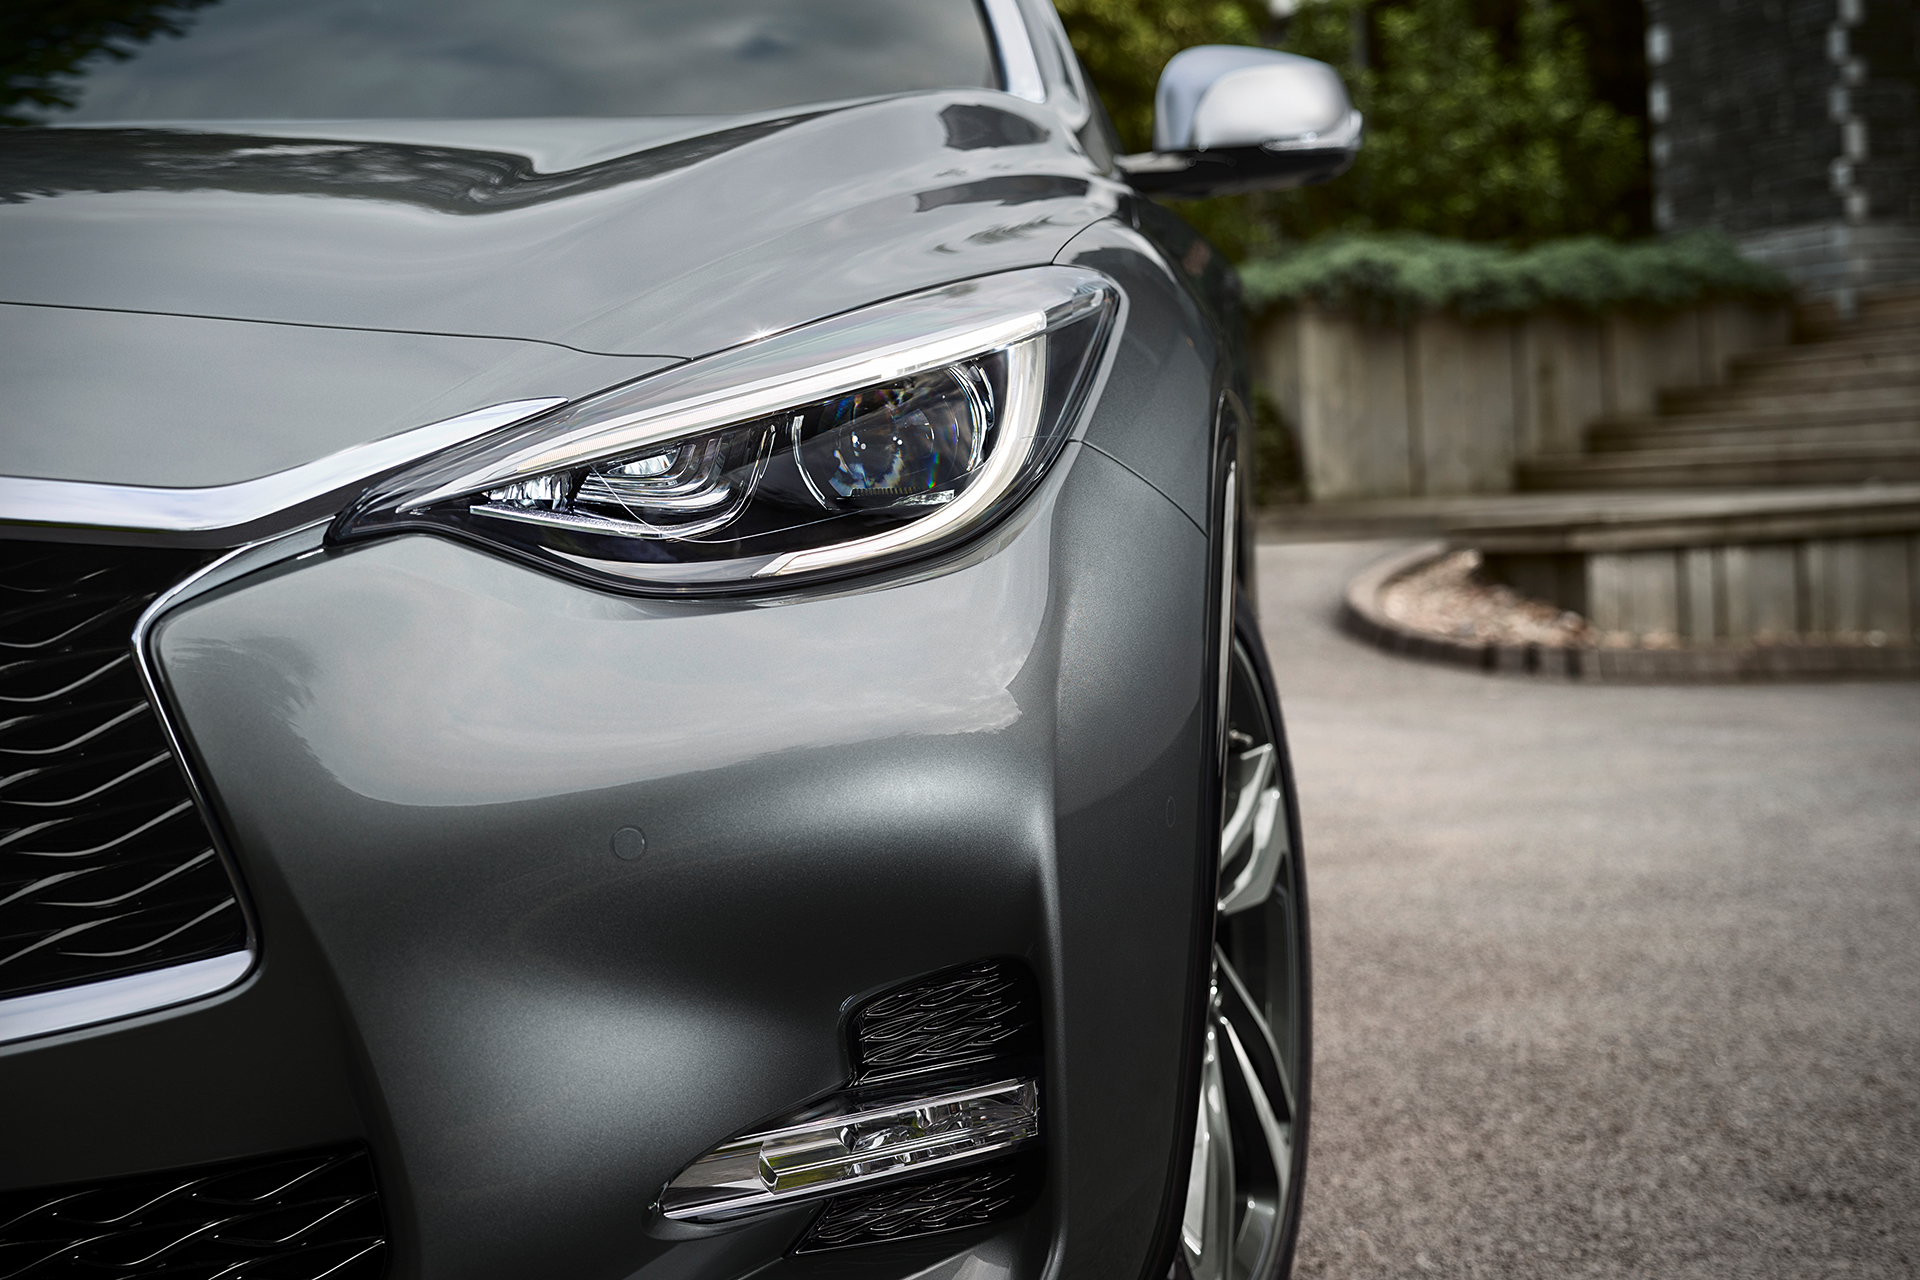 Infiniti Q30 - 2016 - front light / optique avant